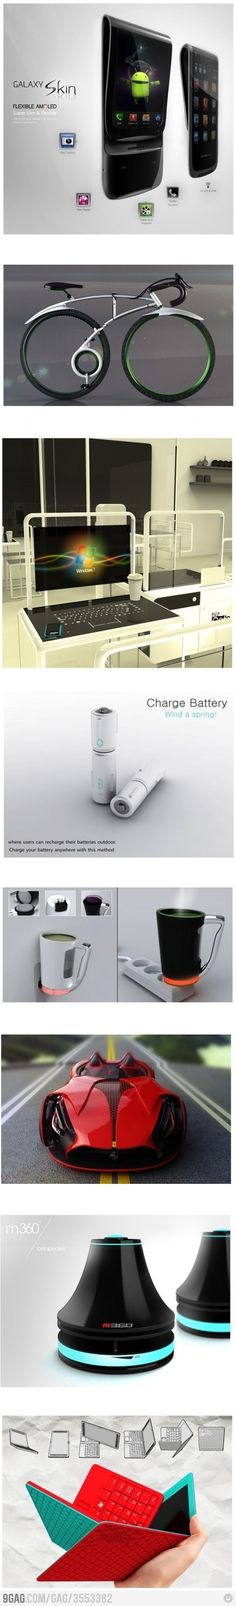 very cool gadgets.